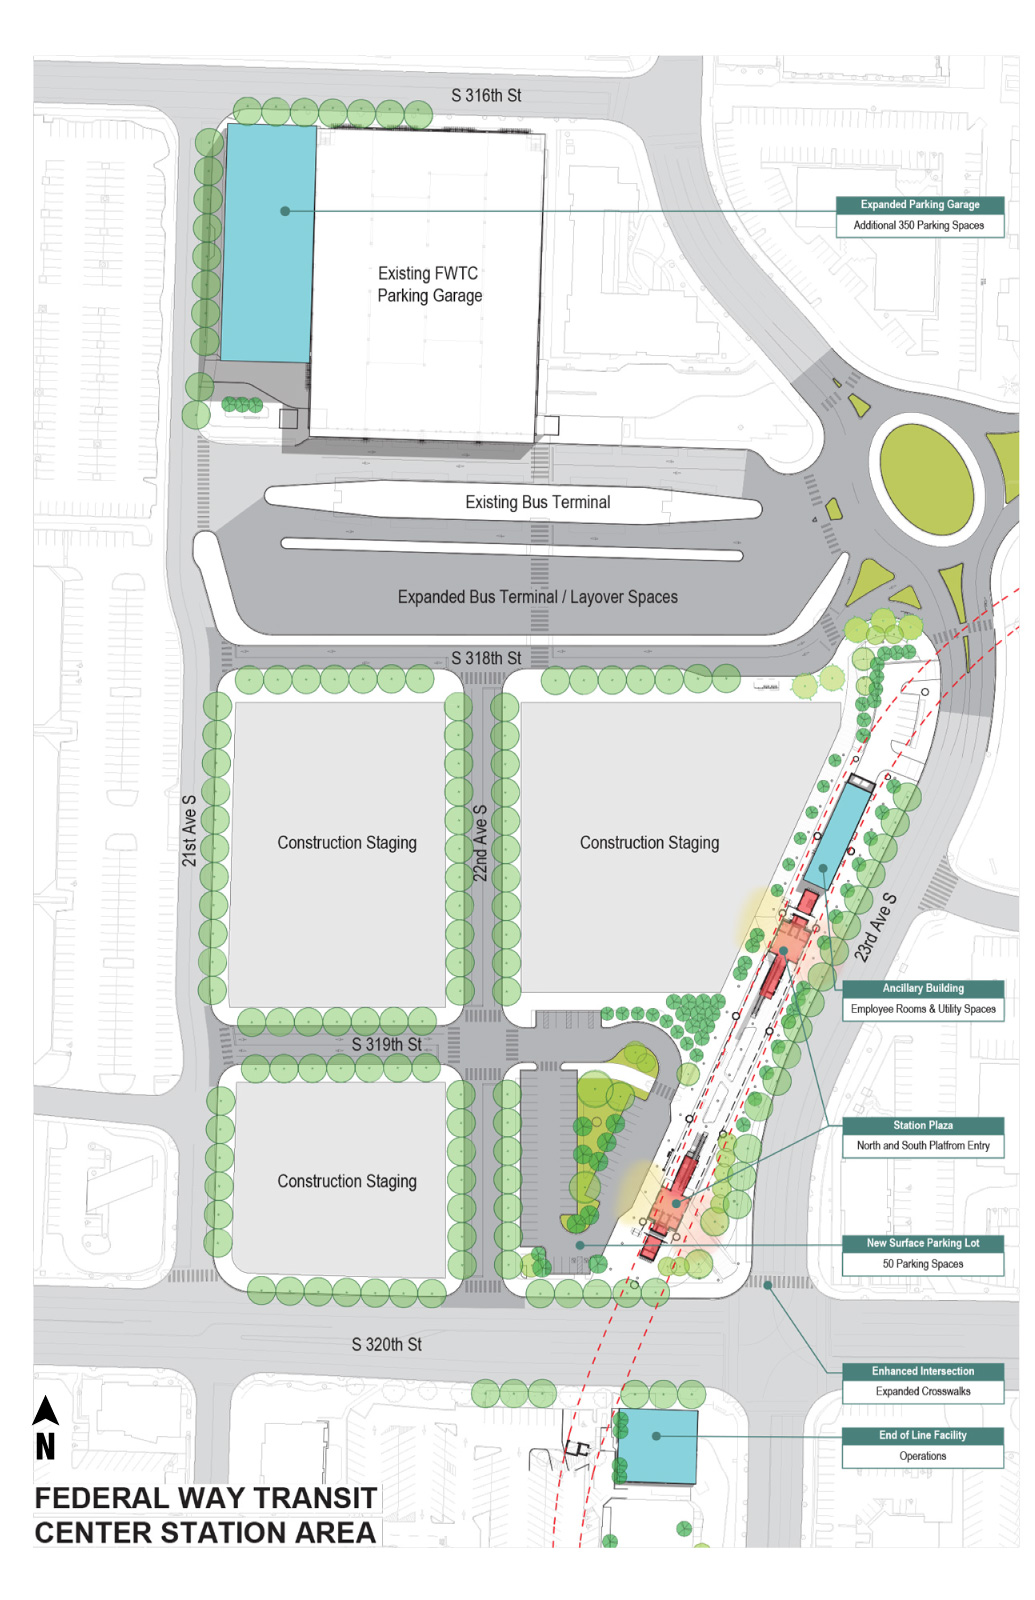 Site plan showing parking garage extension and construction staging area